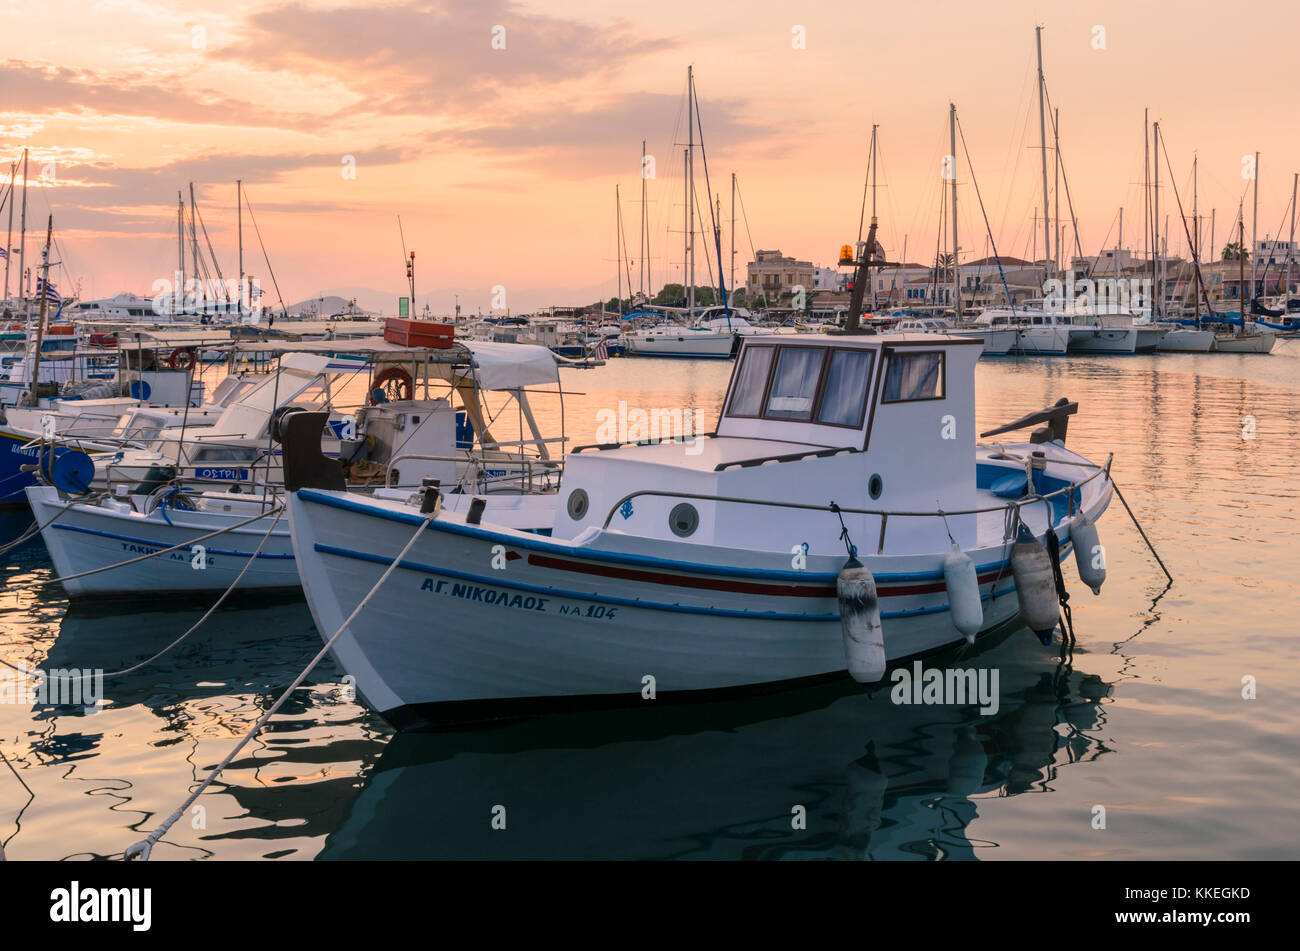 Sunset over moored fishing boats in Aegina Town harbour, Aegina, Greece - Stock Image